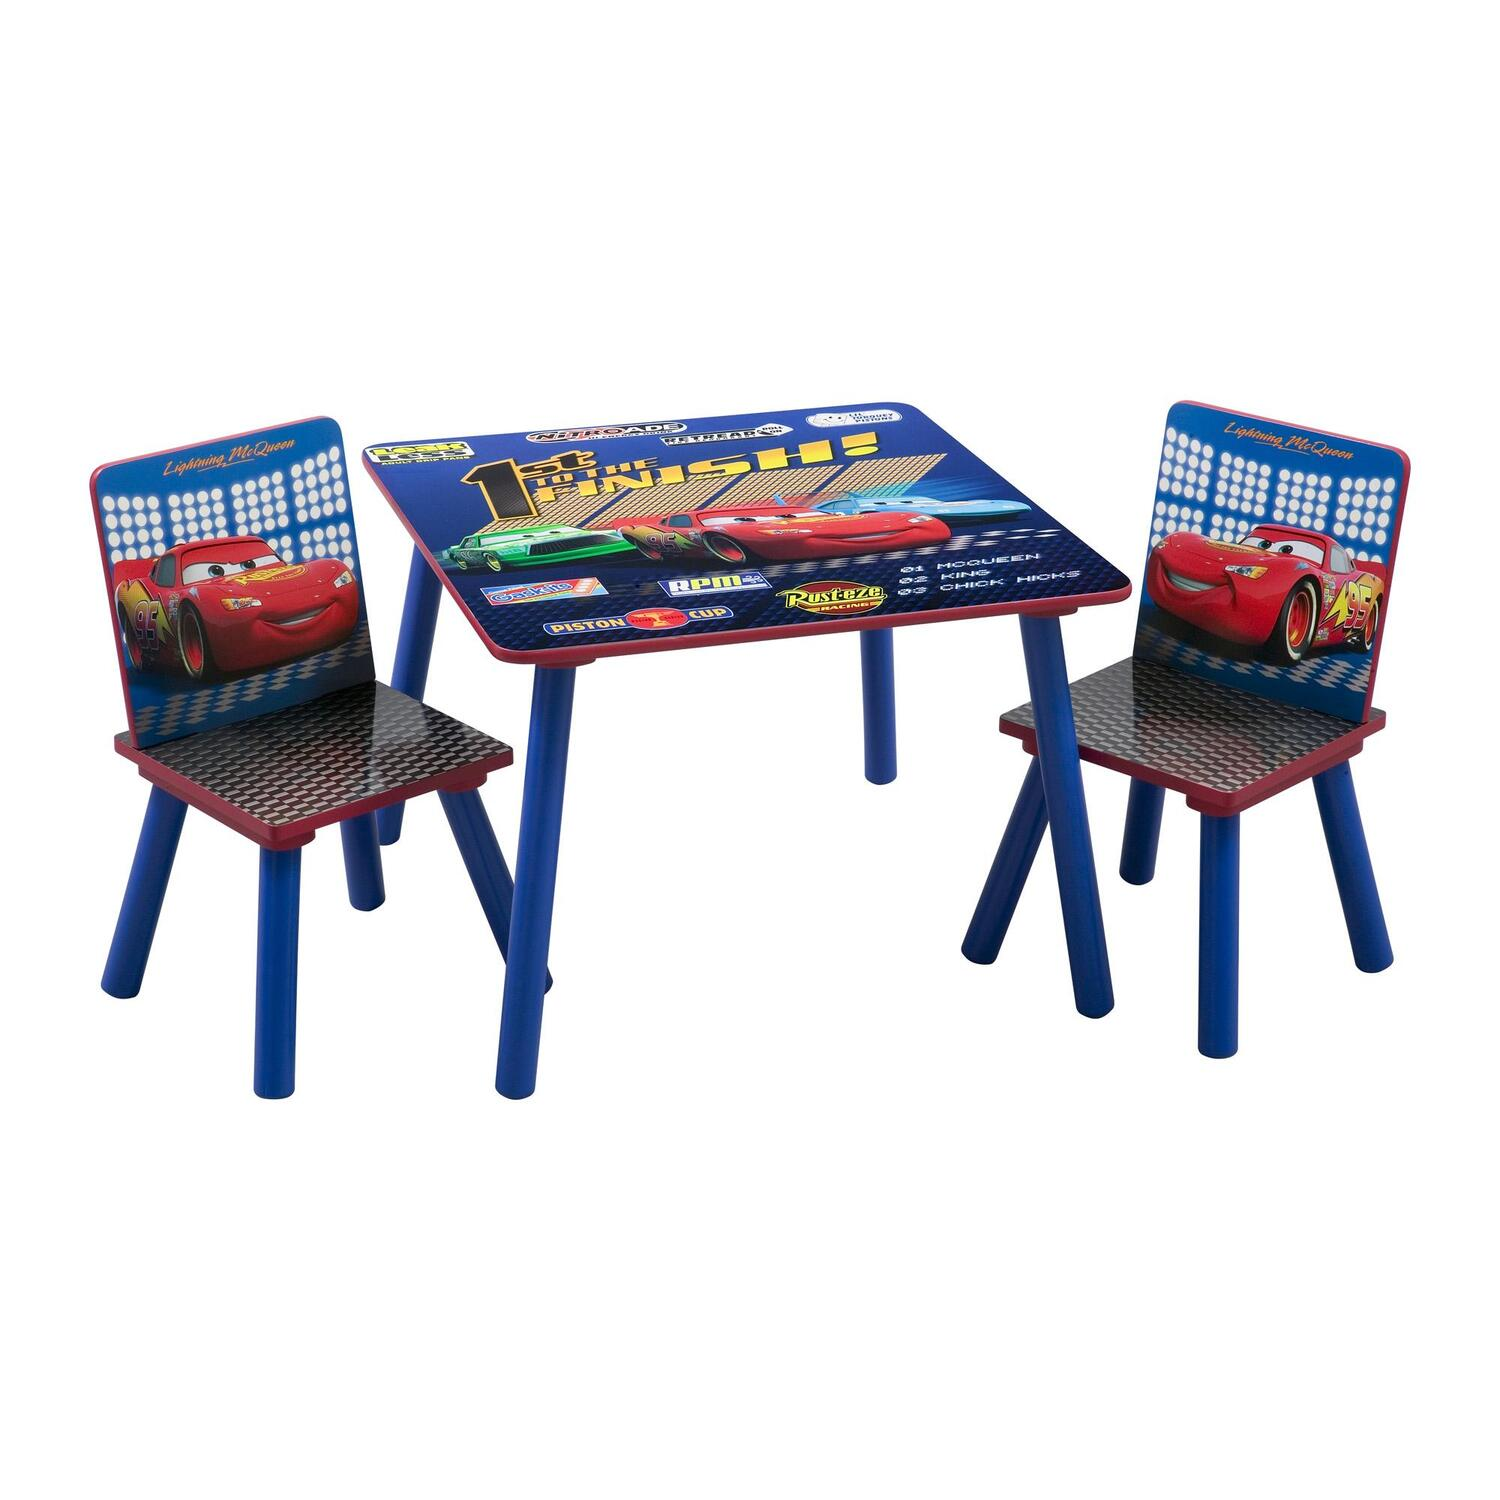 Disney Disney Cars Square Table and Chair Set by OJ Commerce TT89189CR ...